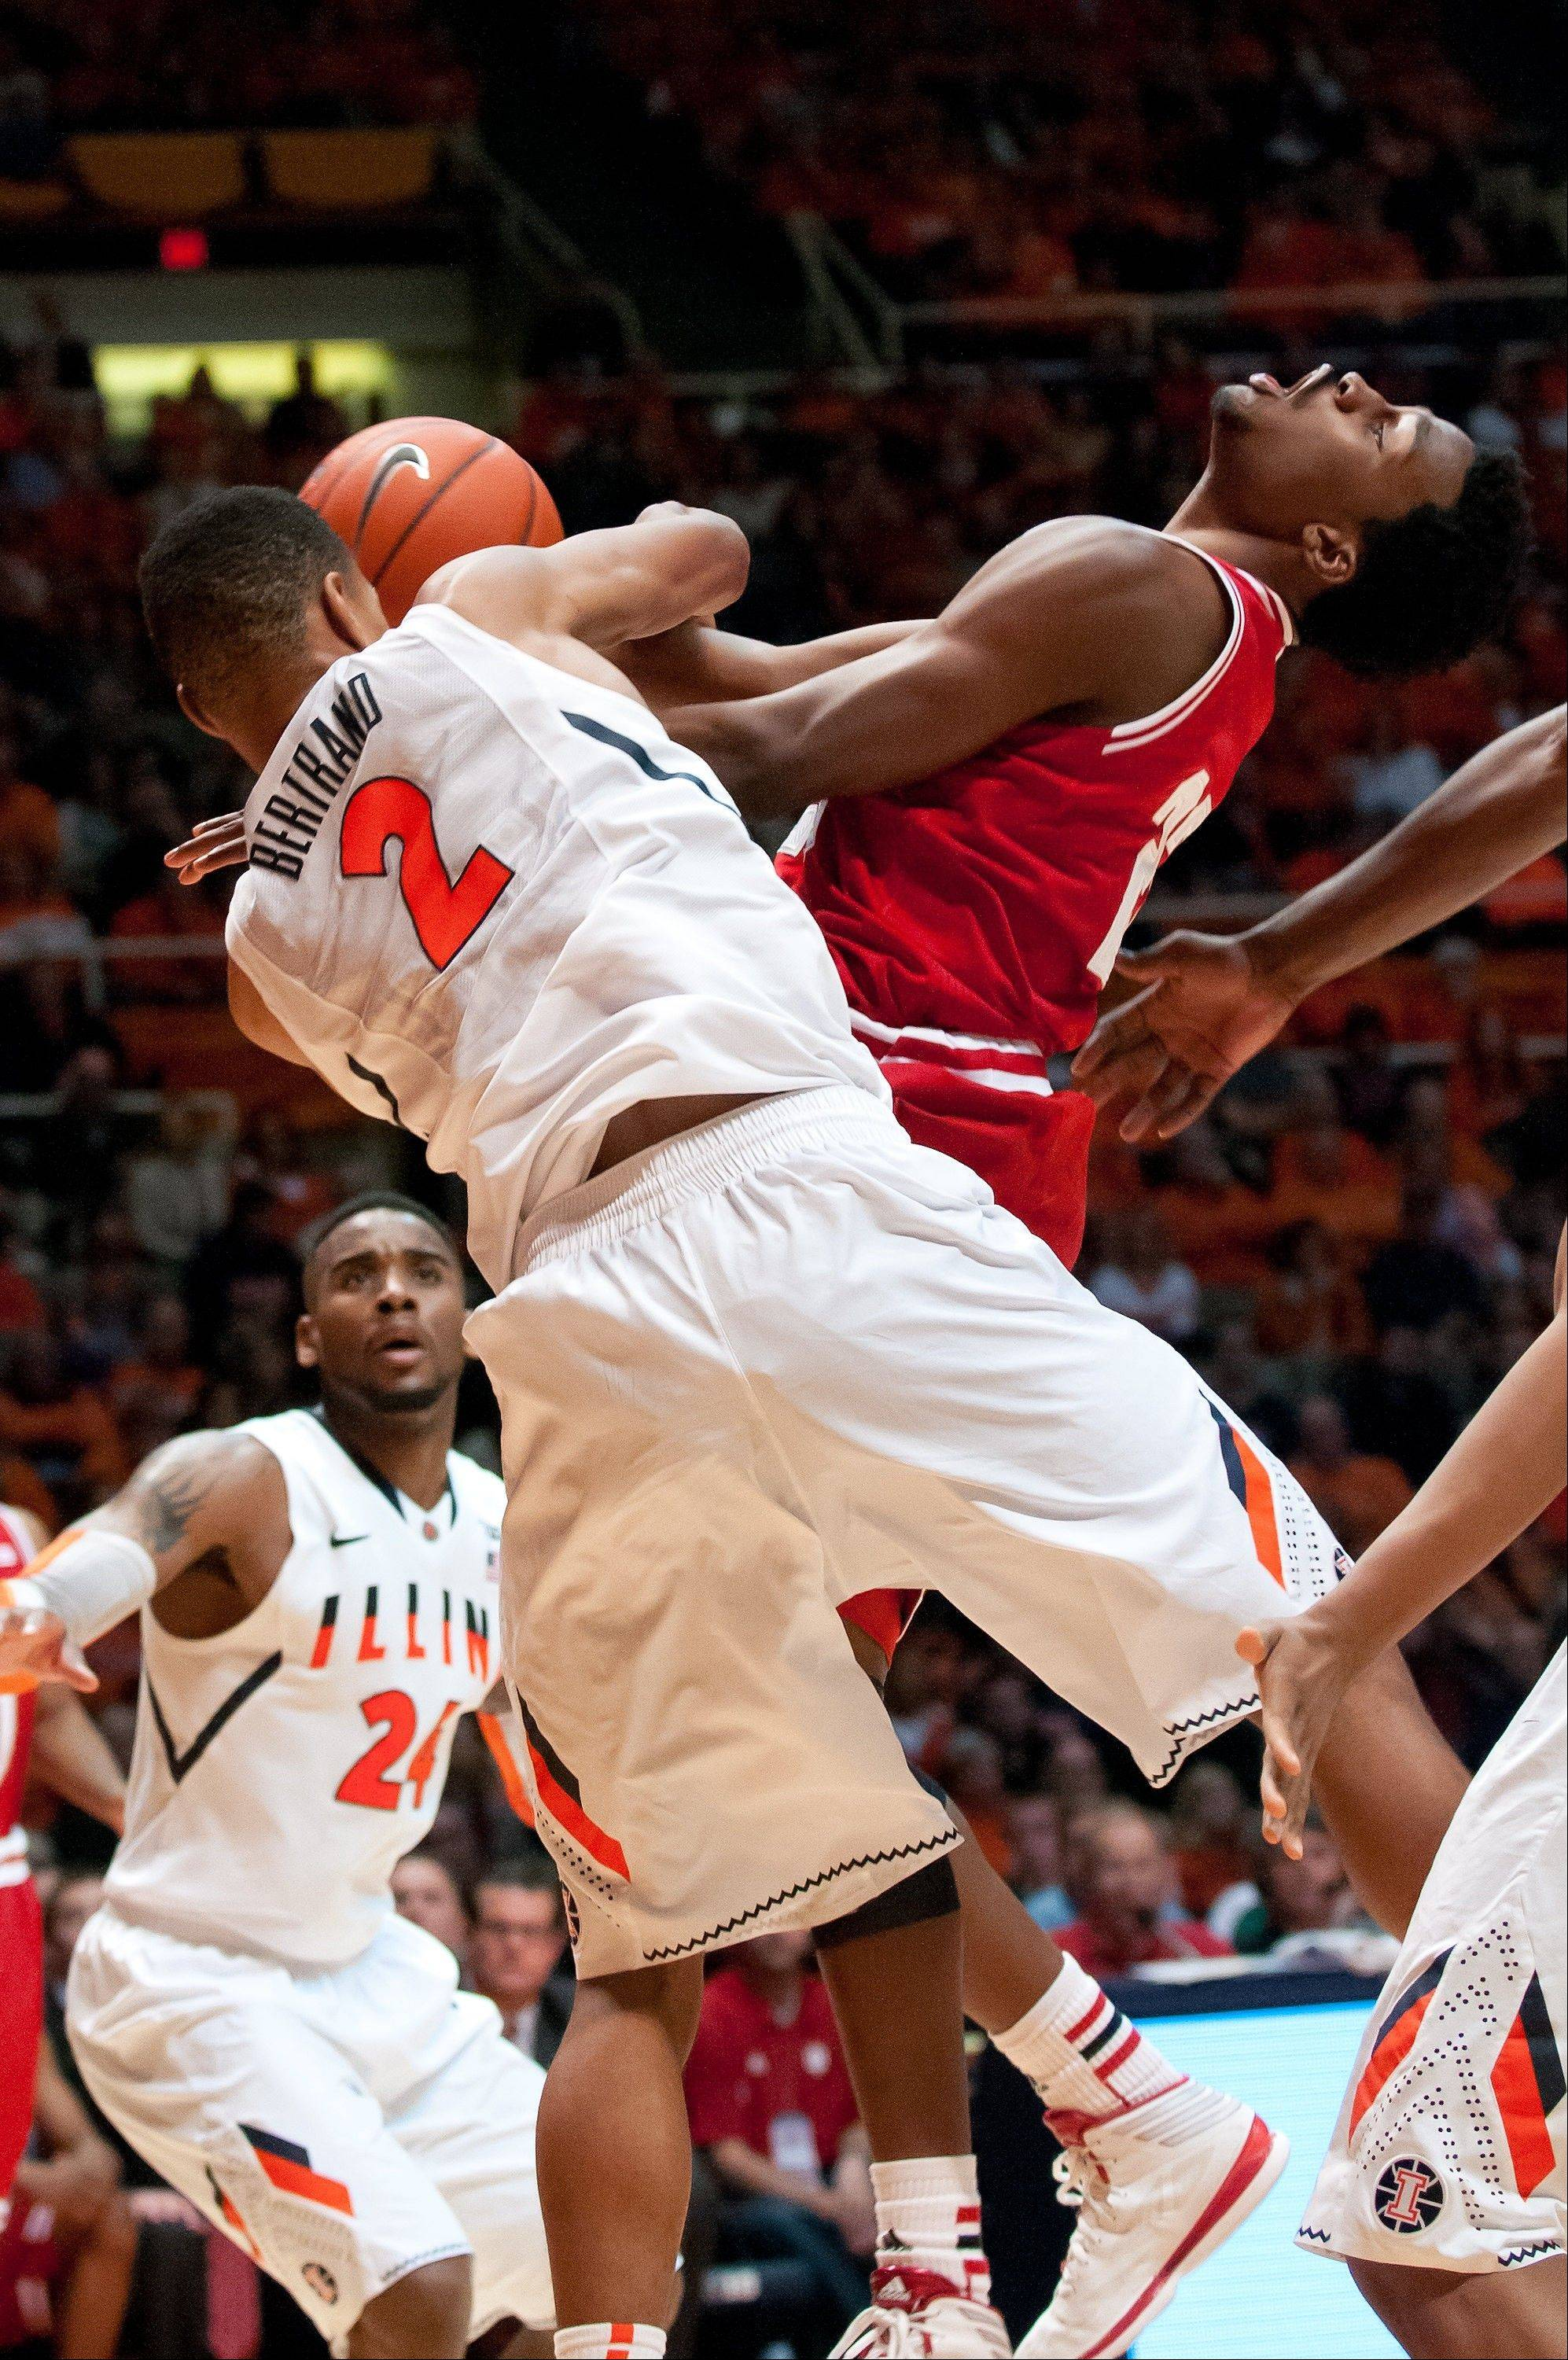 Indiana guard Stanford Robinson is fouled by Illinois guard Joseph Bertrand during the second half of Tuesday's game in Champaign, Ill.